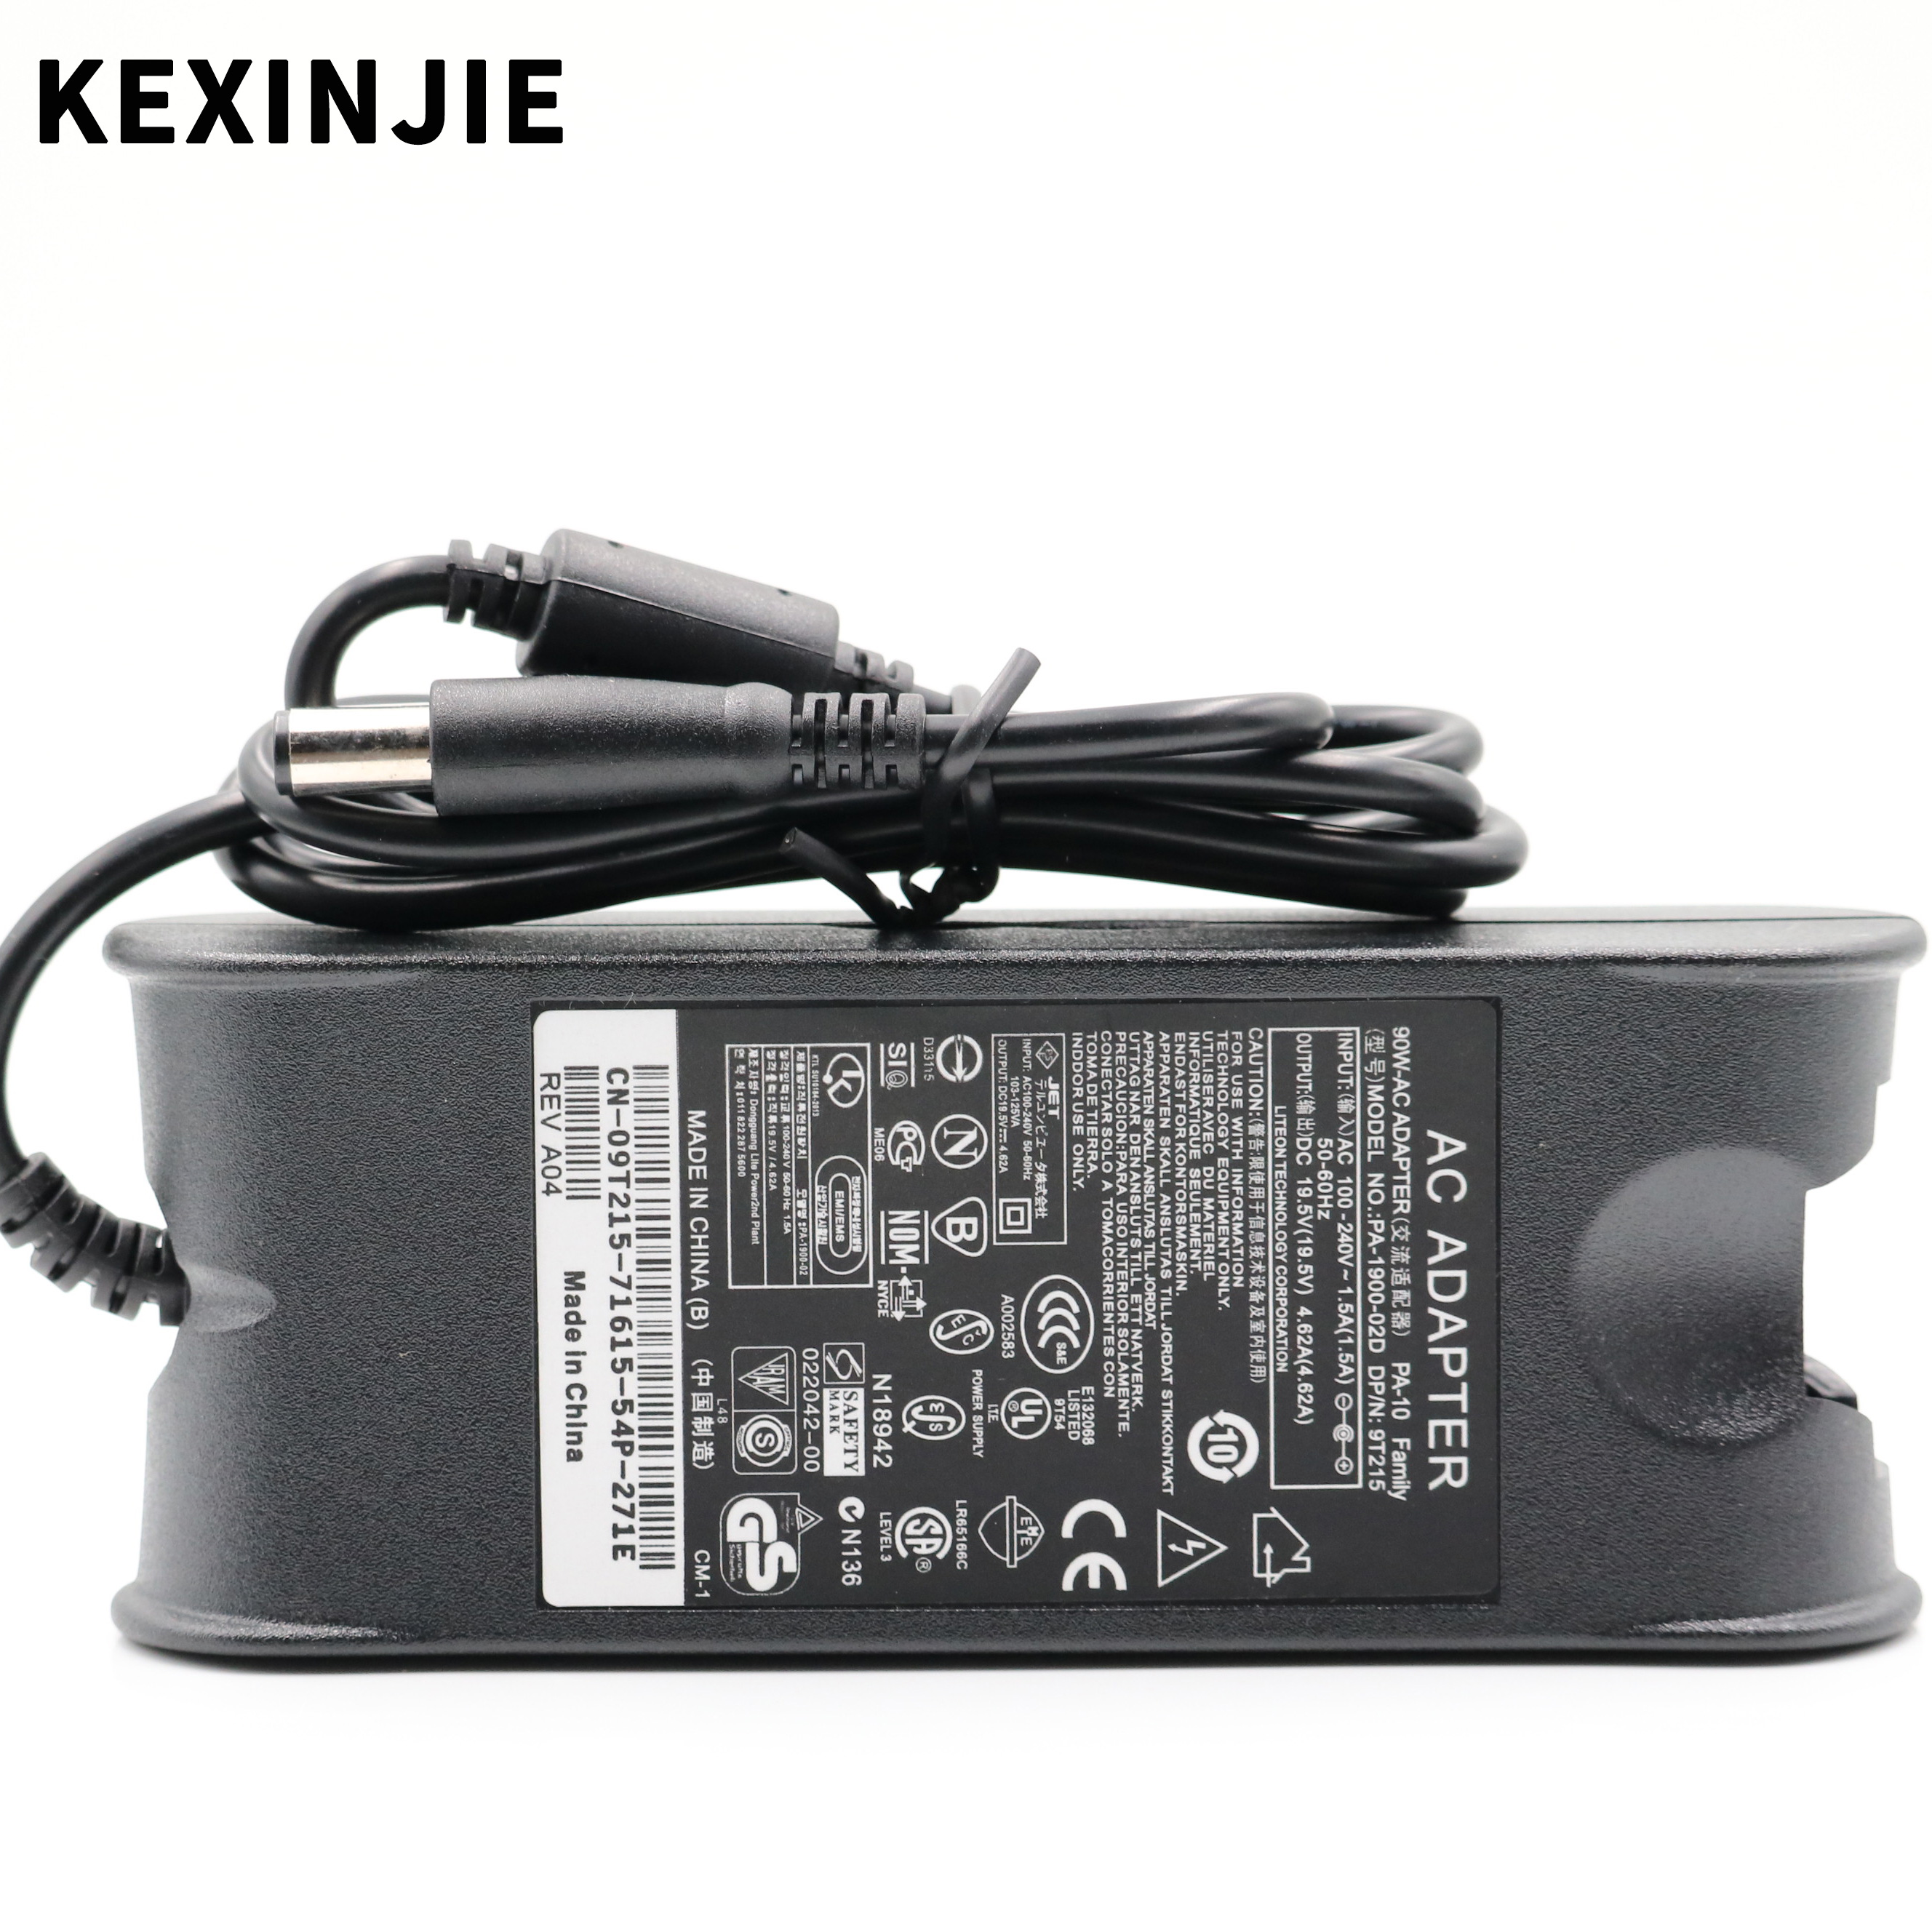 19.5v 4.62a 90w 7.4x5.0mm laptop adapter charger for dell inspiron 15 (3520) (3521) power supply